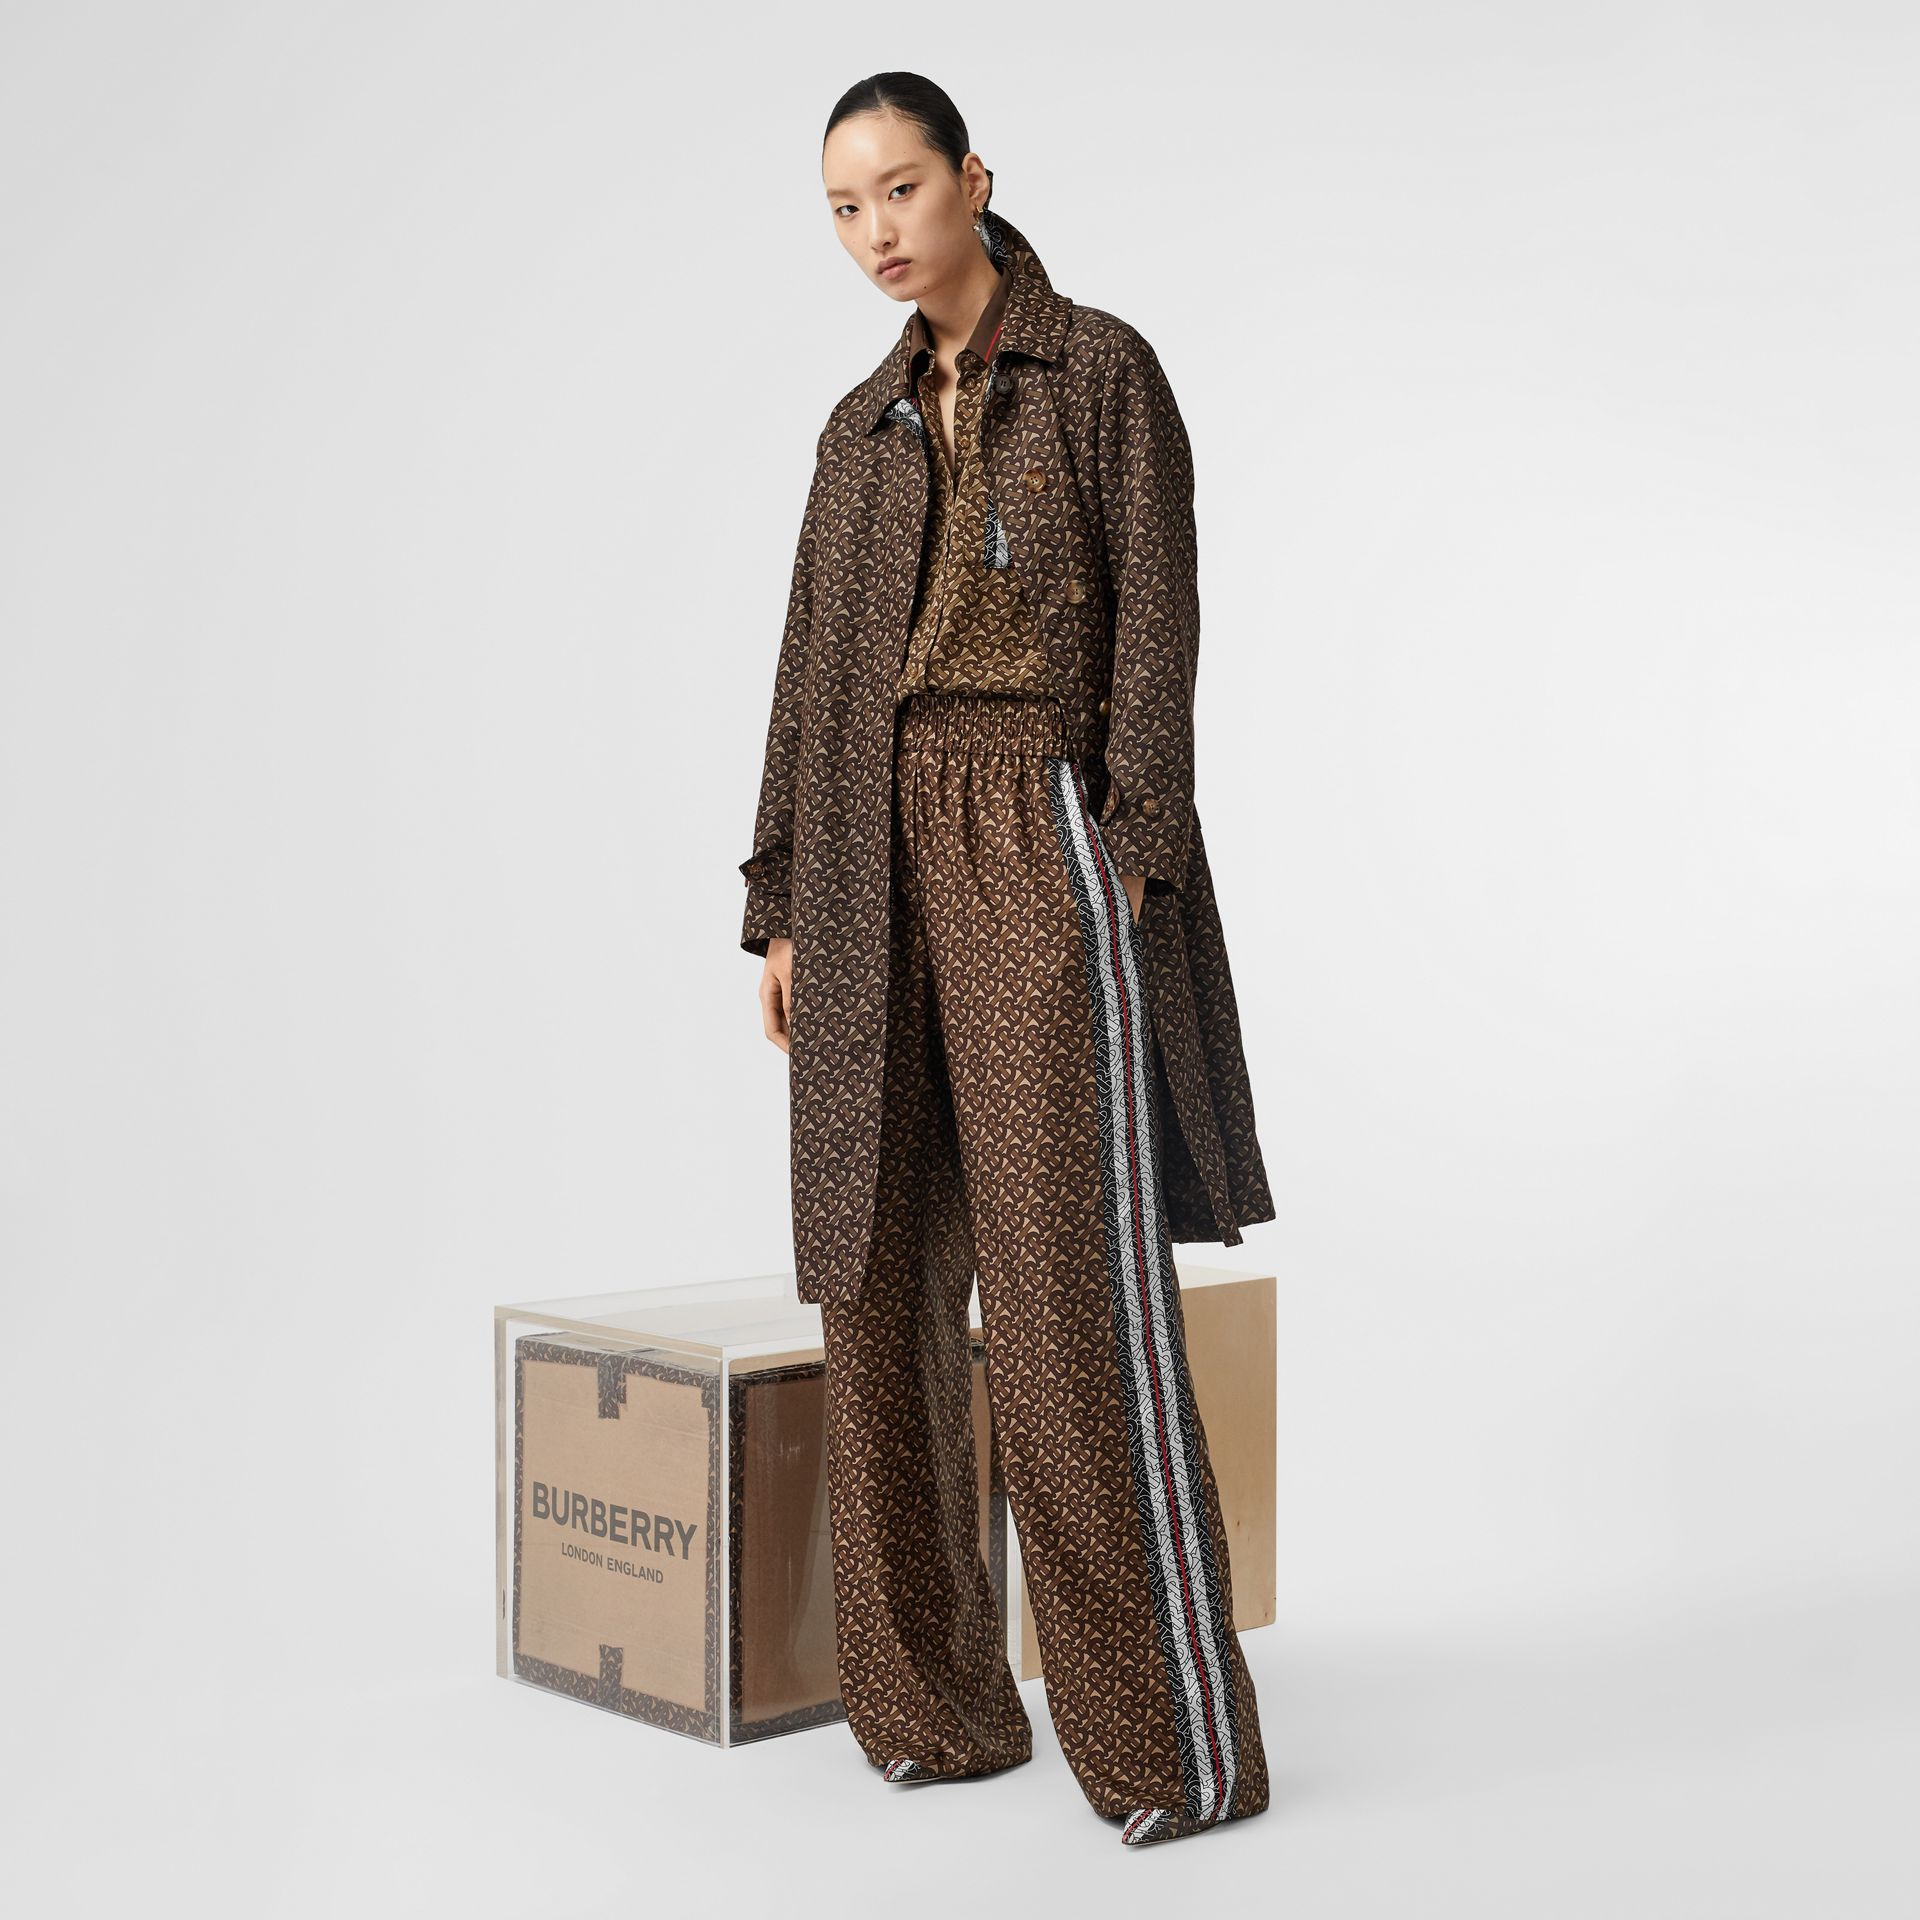 Monogram Stripe Print Nylon Car Coat in Bridle Brown - Women | Burberry United States - gallery image 6